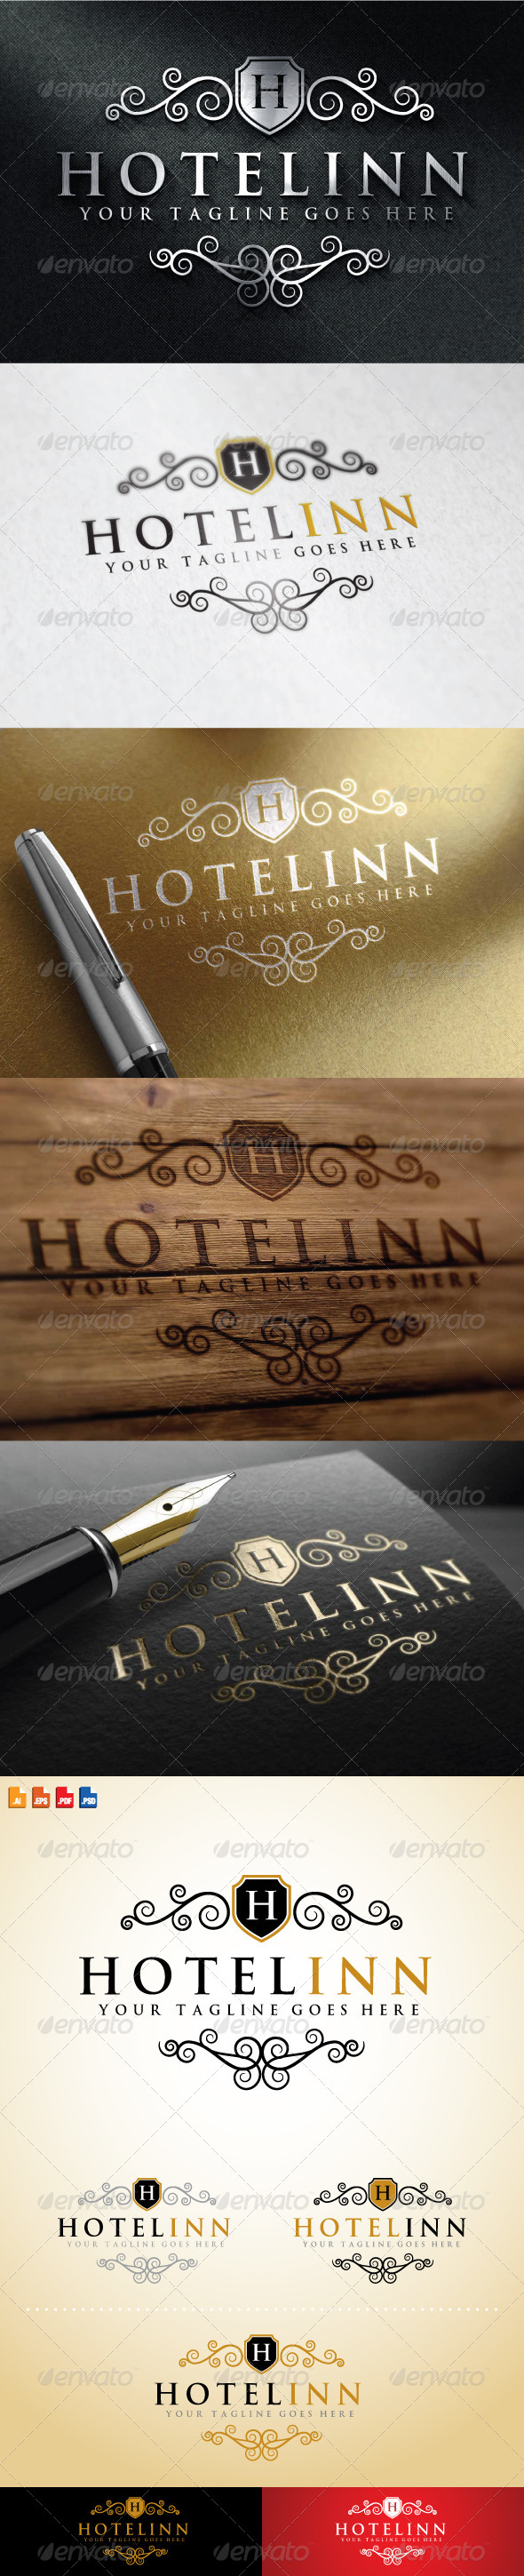 GraphicRiver Hotel Inn Logo 8628014